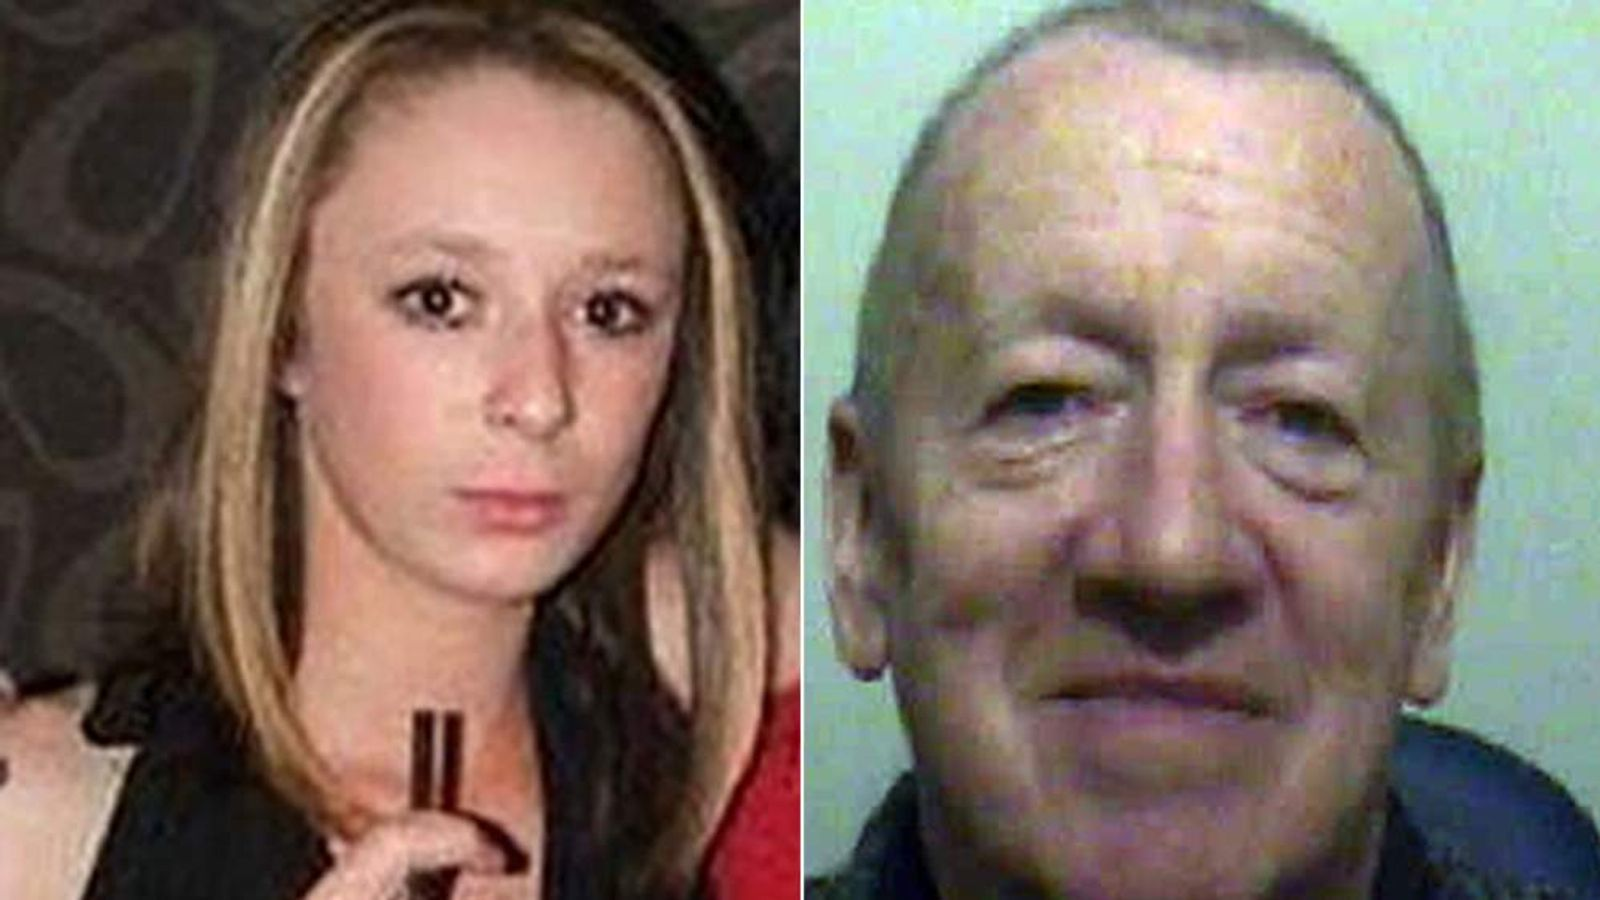 Man Groomed Girl Before Beating Her To Death | UK News ...